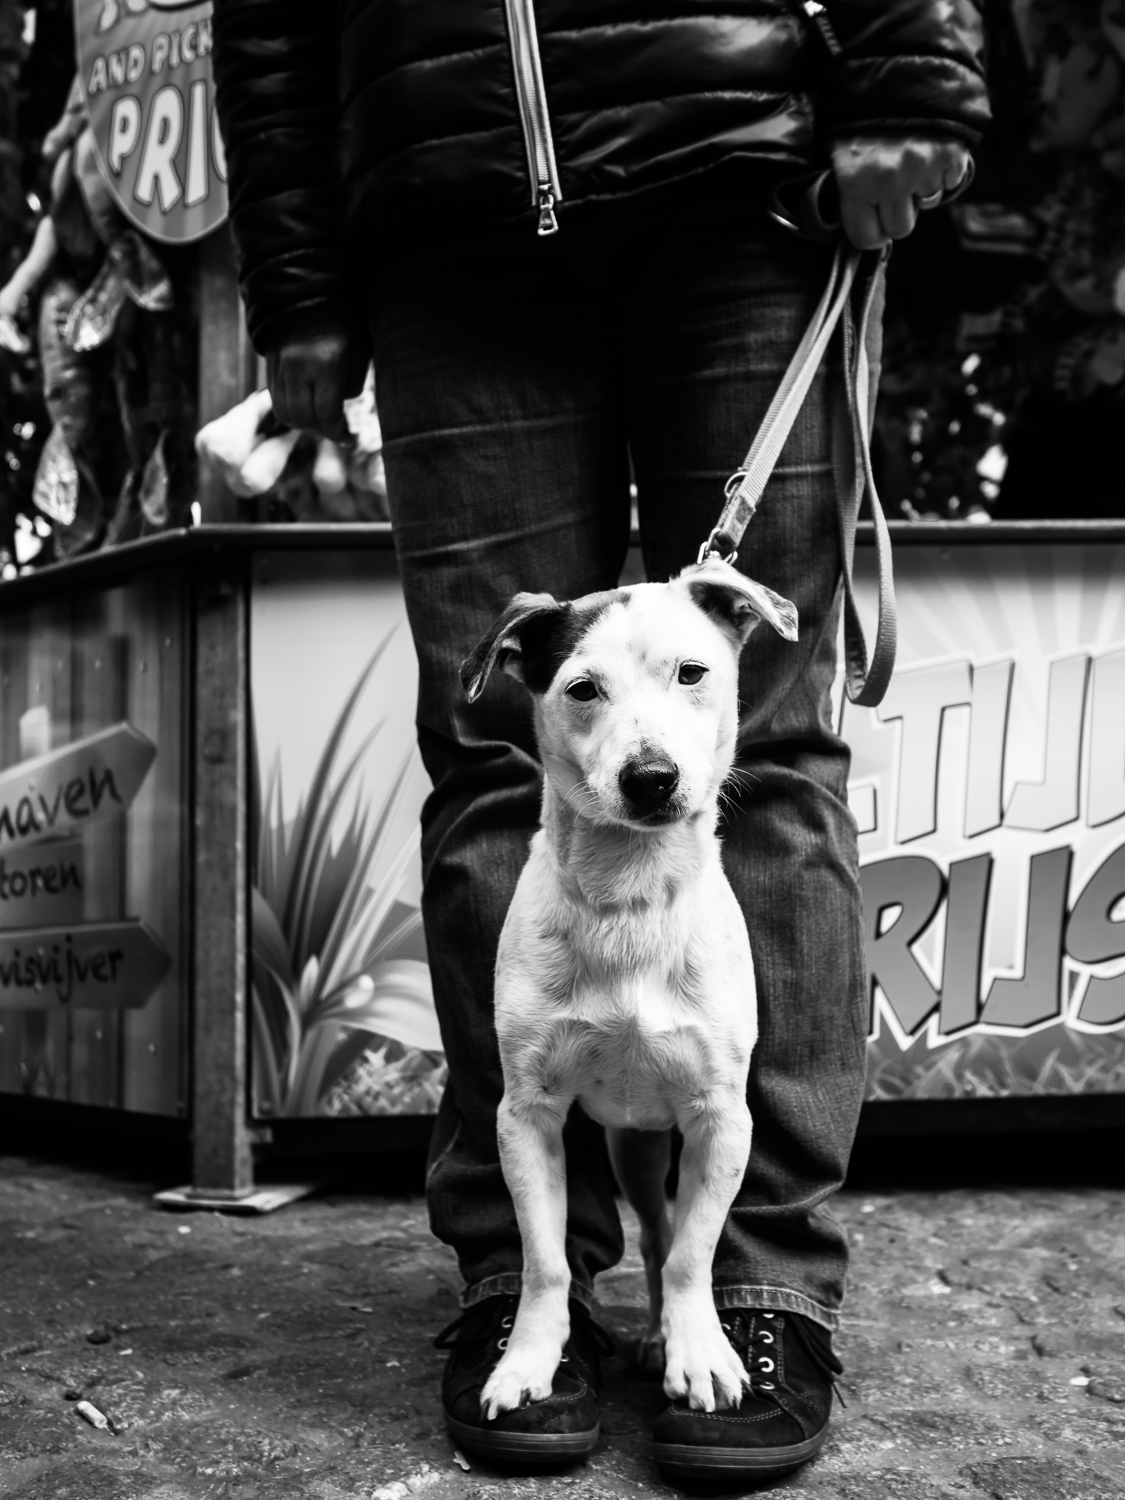 Photo taken in Amsterdam in April 2017 during the fun fair on the Dam Square. I wouldn't take my dog to a fun fair as they hear much better than human beings. It was very very noisy. The dog doesn't seem to care though. I liked the way he was standing on the shoes of his owner. Of course I added this dog to my    Street Dogs series   .  Shot with Olympus OMD1 Mark 2 and Olympus 17mm f/1.8.